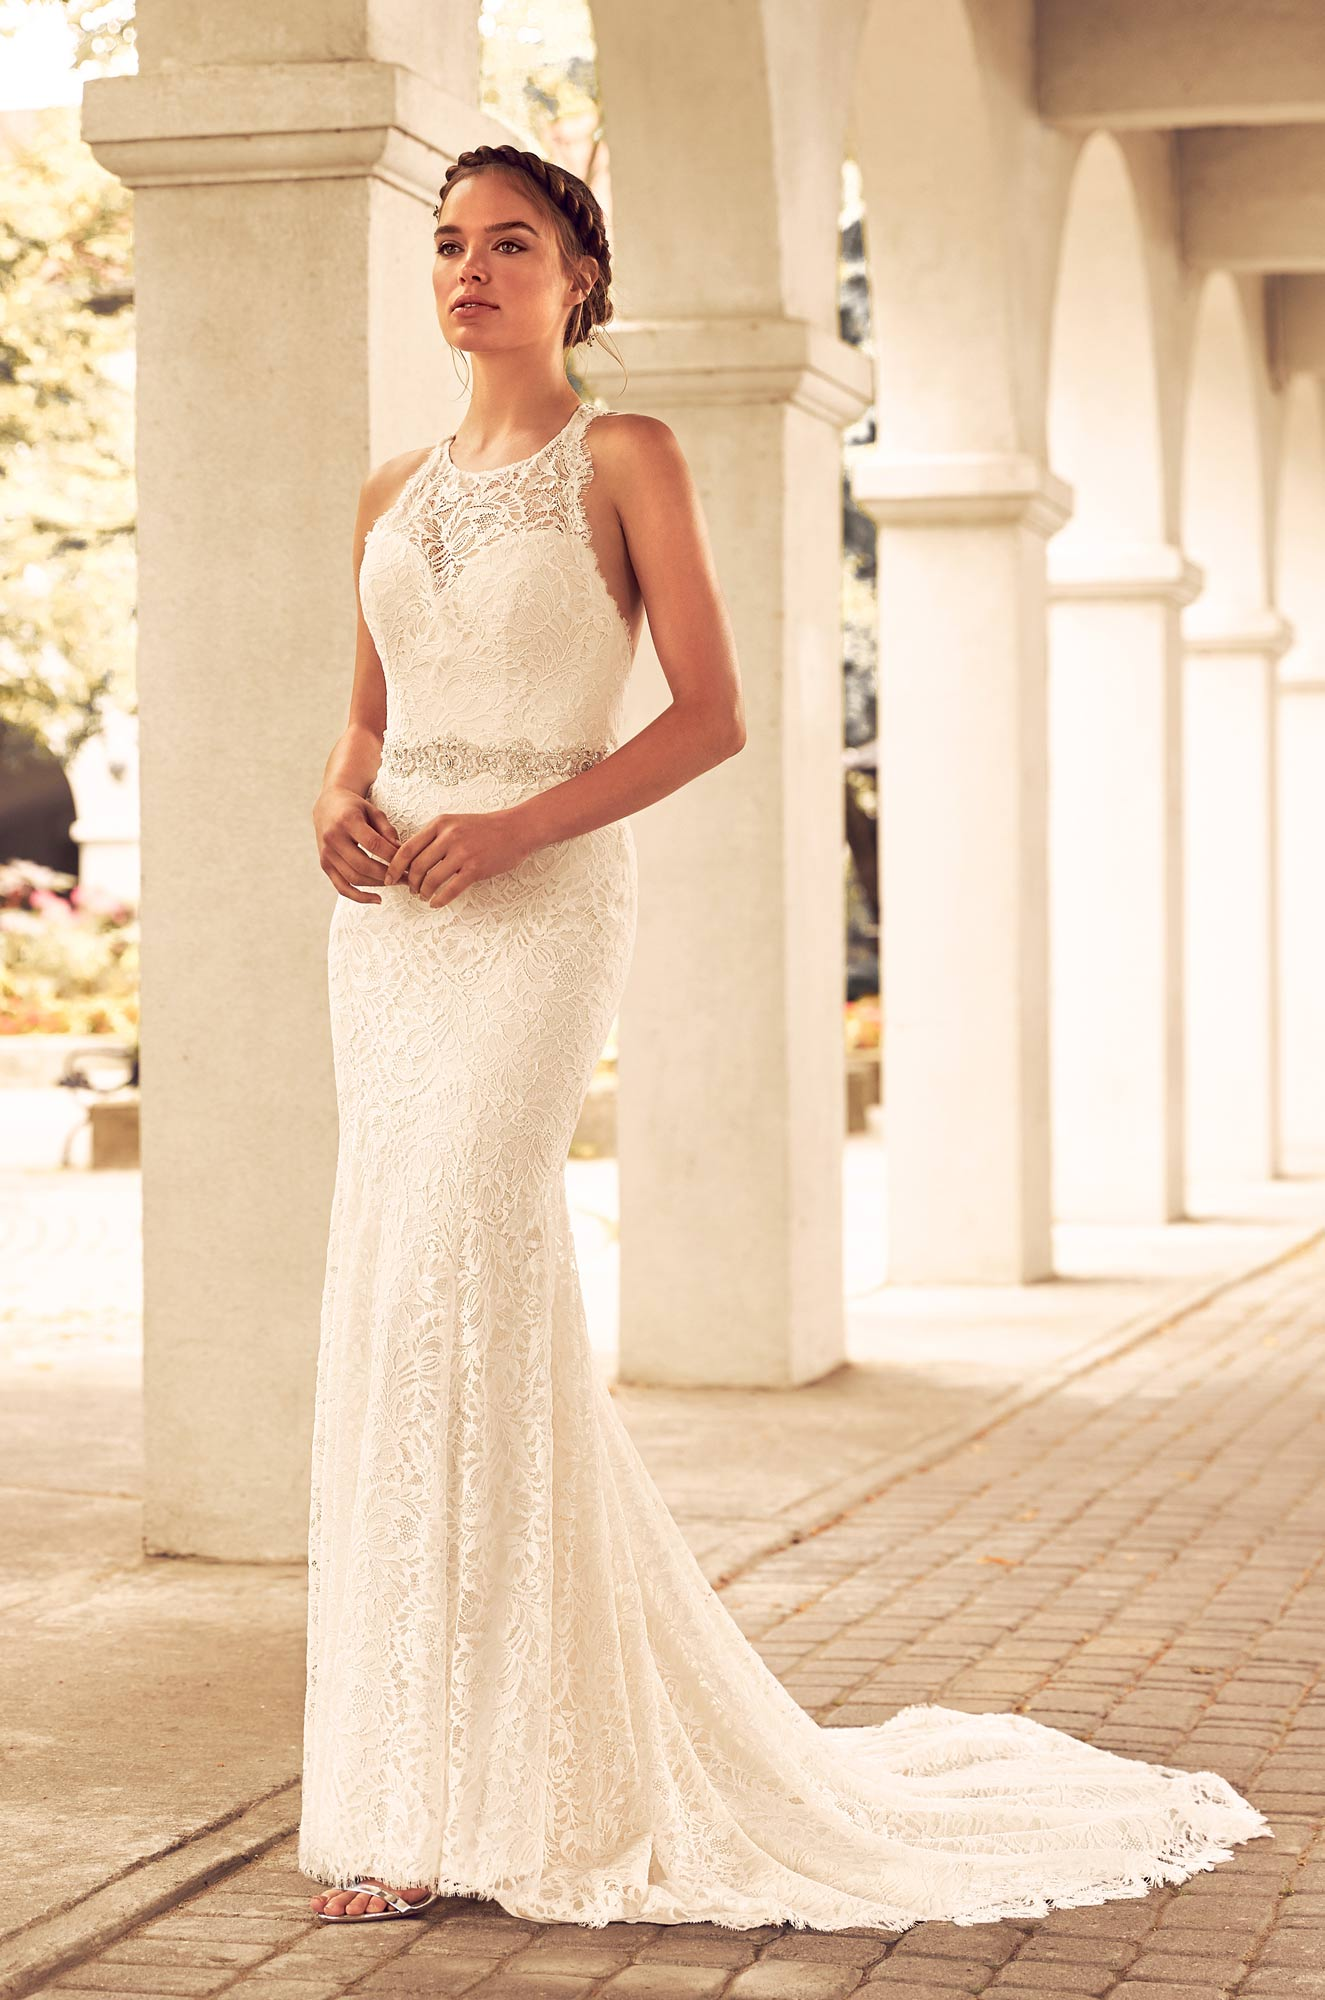 Mira Couture Paloma Blanca 4795 Wedding Dress Bridal Gown Chicago Boutique Front